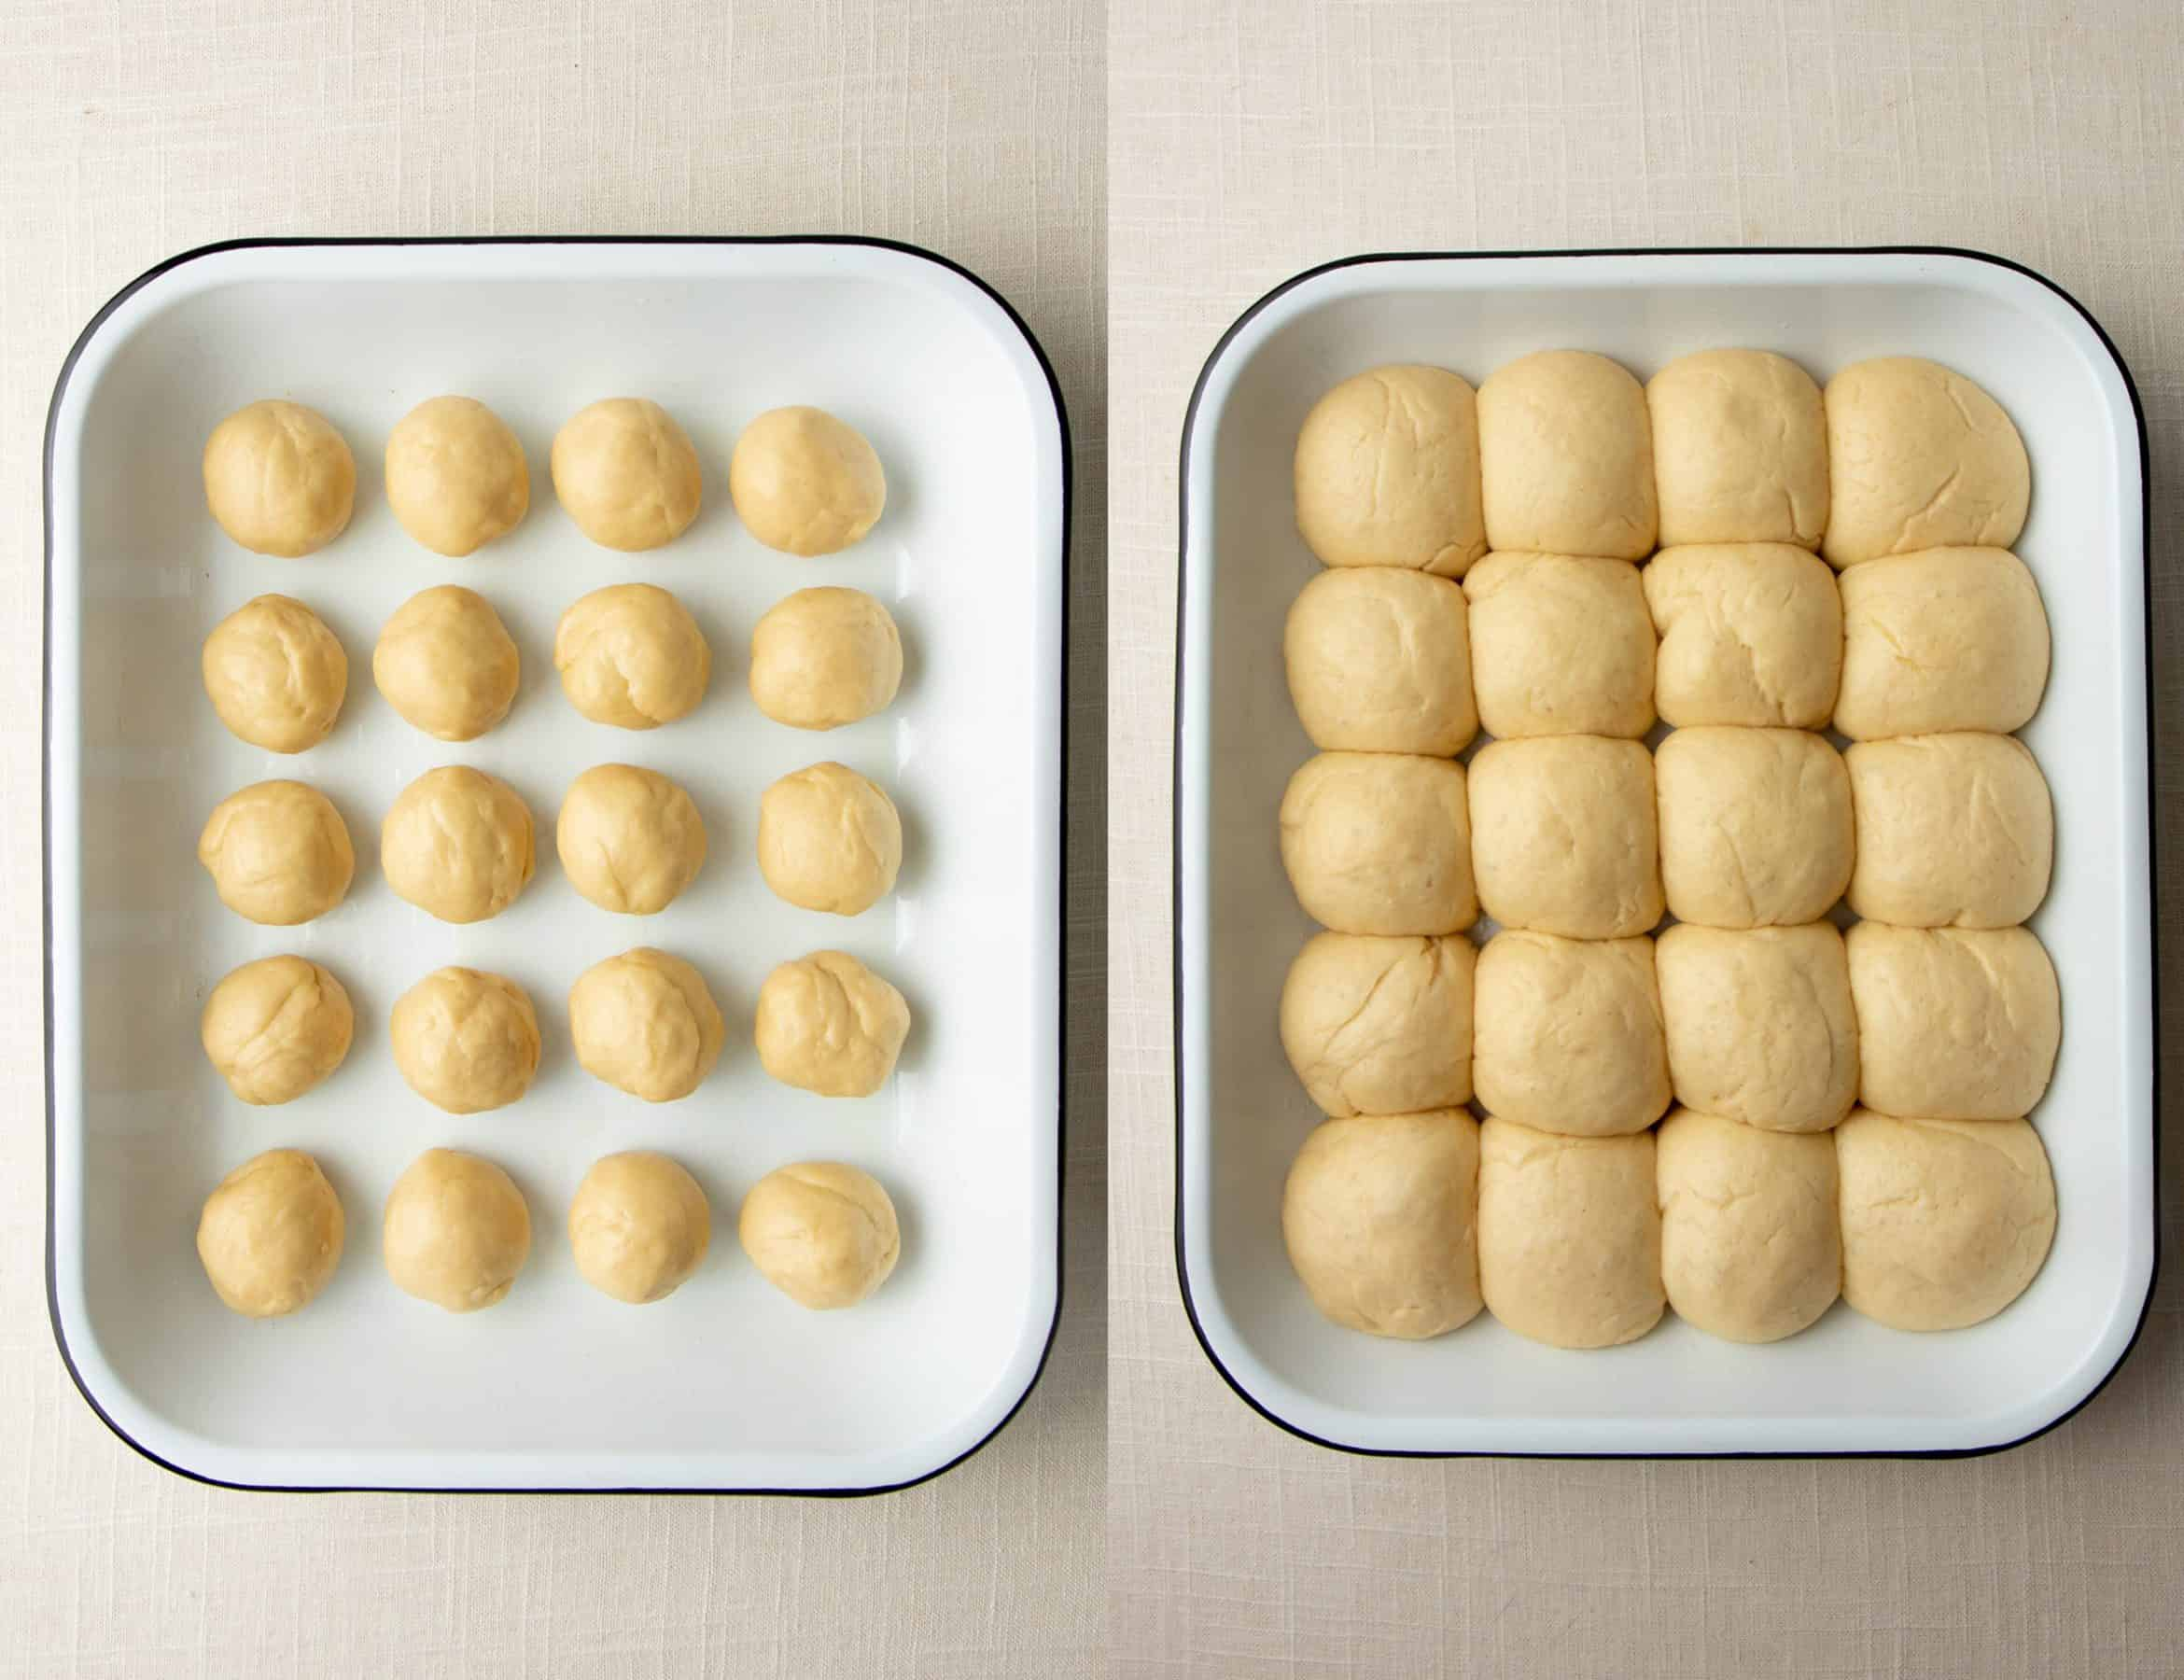 A split image with balls of bread dough on the left, and dough after rising on the right.